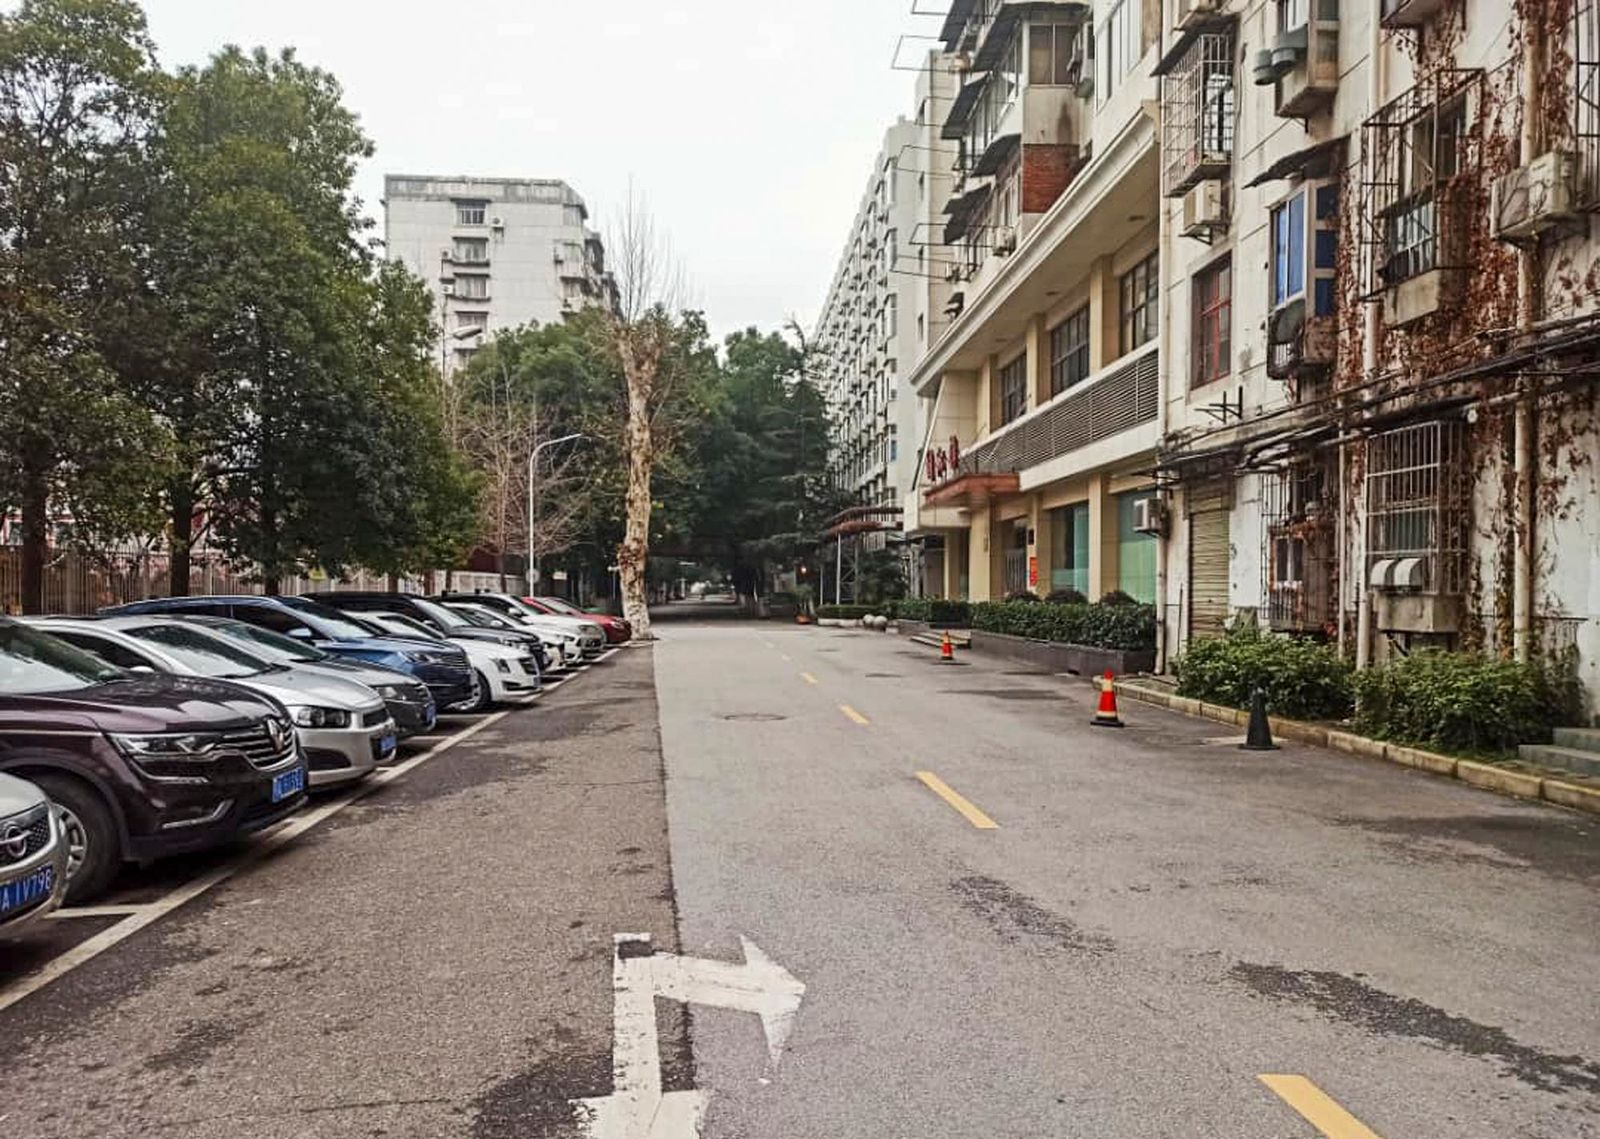 This Jan. 27, 2020, photo provided by Dr. Khamis Hassan Bakari of Tanzania, shows an empty street in Wuhan, China. Bakari is among more than 4,000 African students in the Chinese city of 11 million people, and has been sending updates on social media about the outbreak of a new virus to the more than 400 other Tanzanian students in Wuhan, as China's astonishing lockdown of more than 30 million people continues. (Khamis Hassan Bakari via AP)